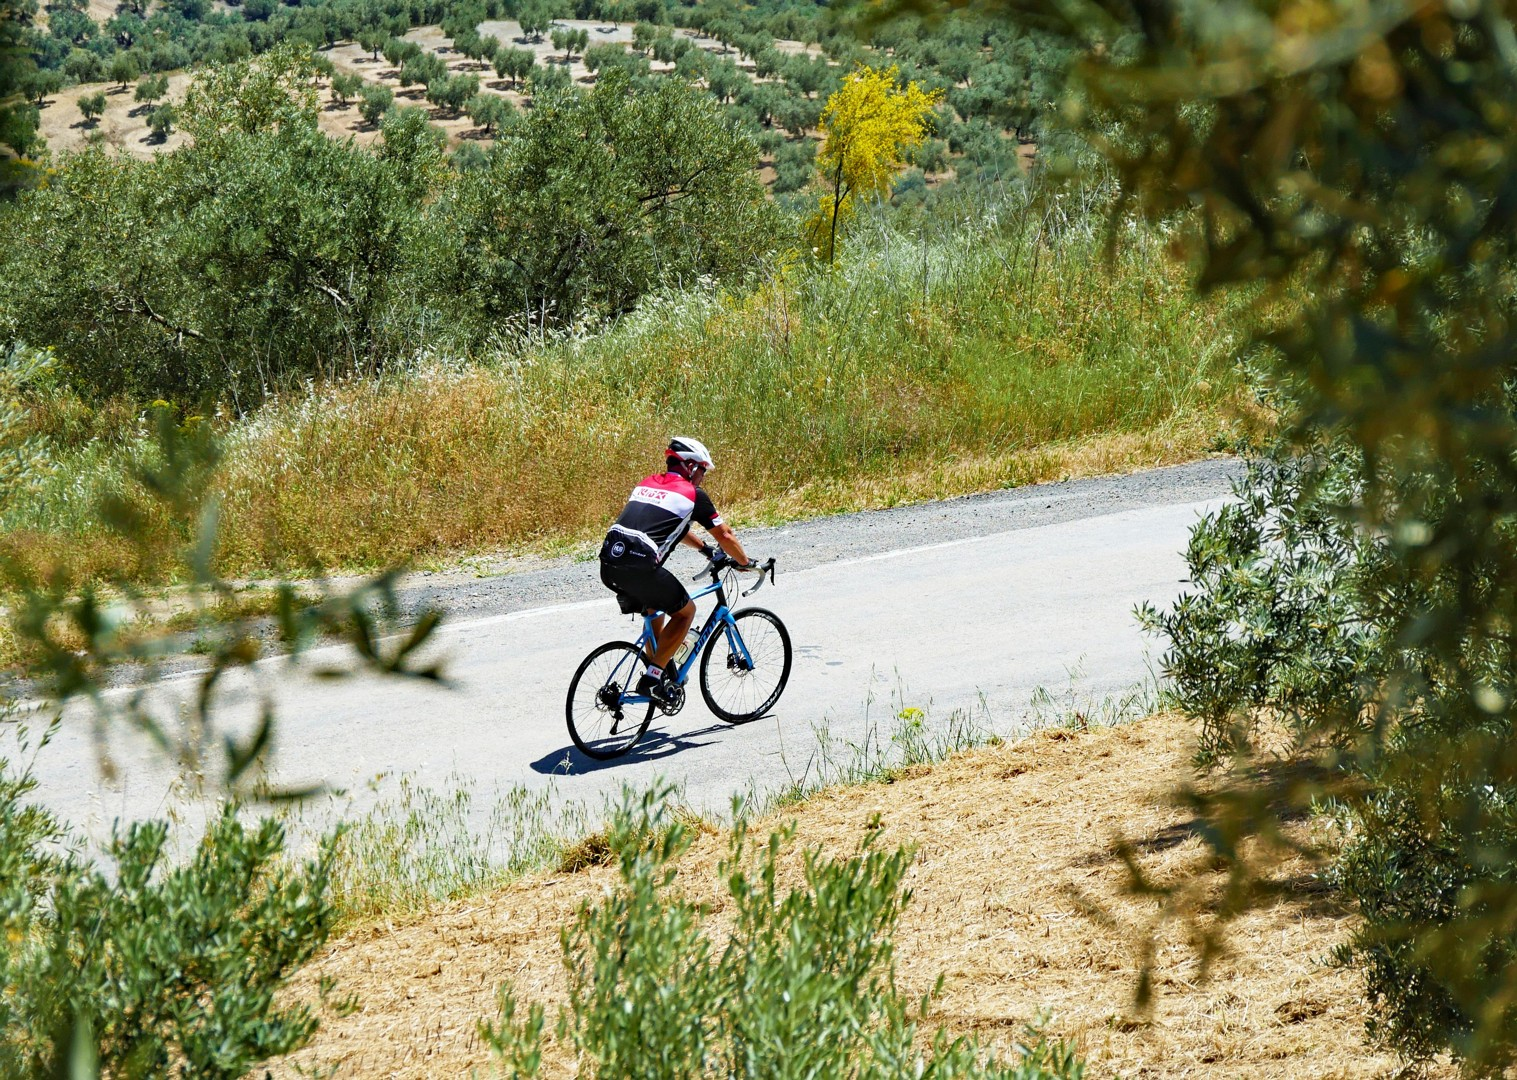 road-cycling-through-olive-groves-andalucia.jpg - NEW! Spain - Basque Country to Andalucia - 21 Day - Road Cycling